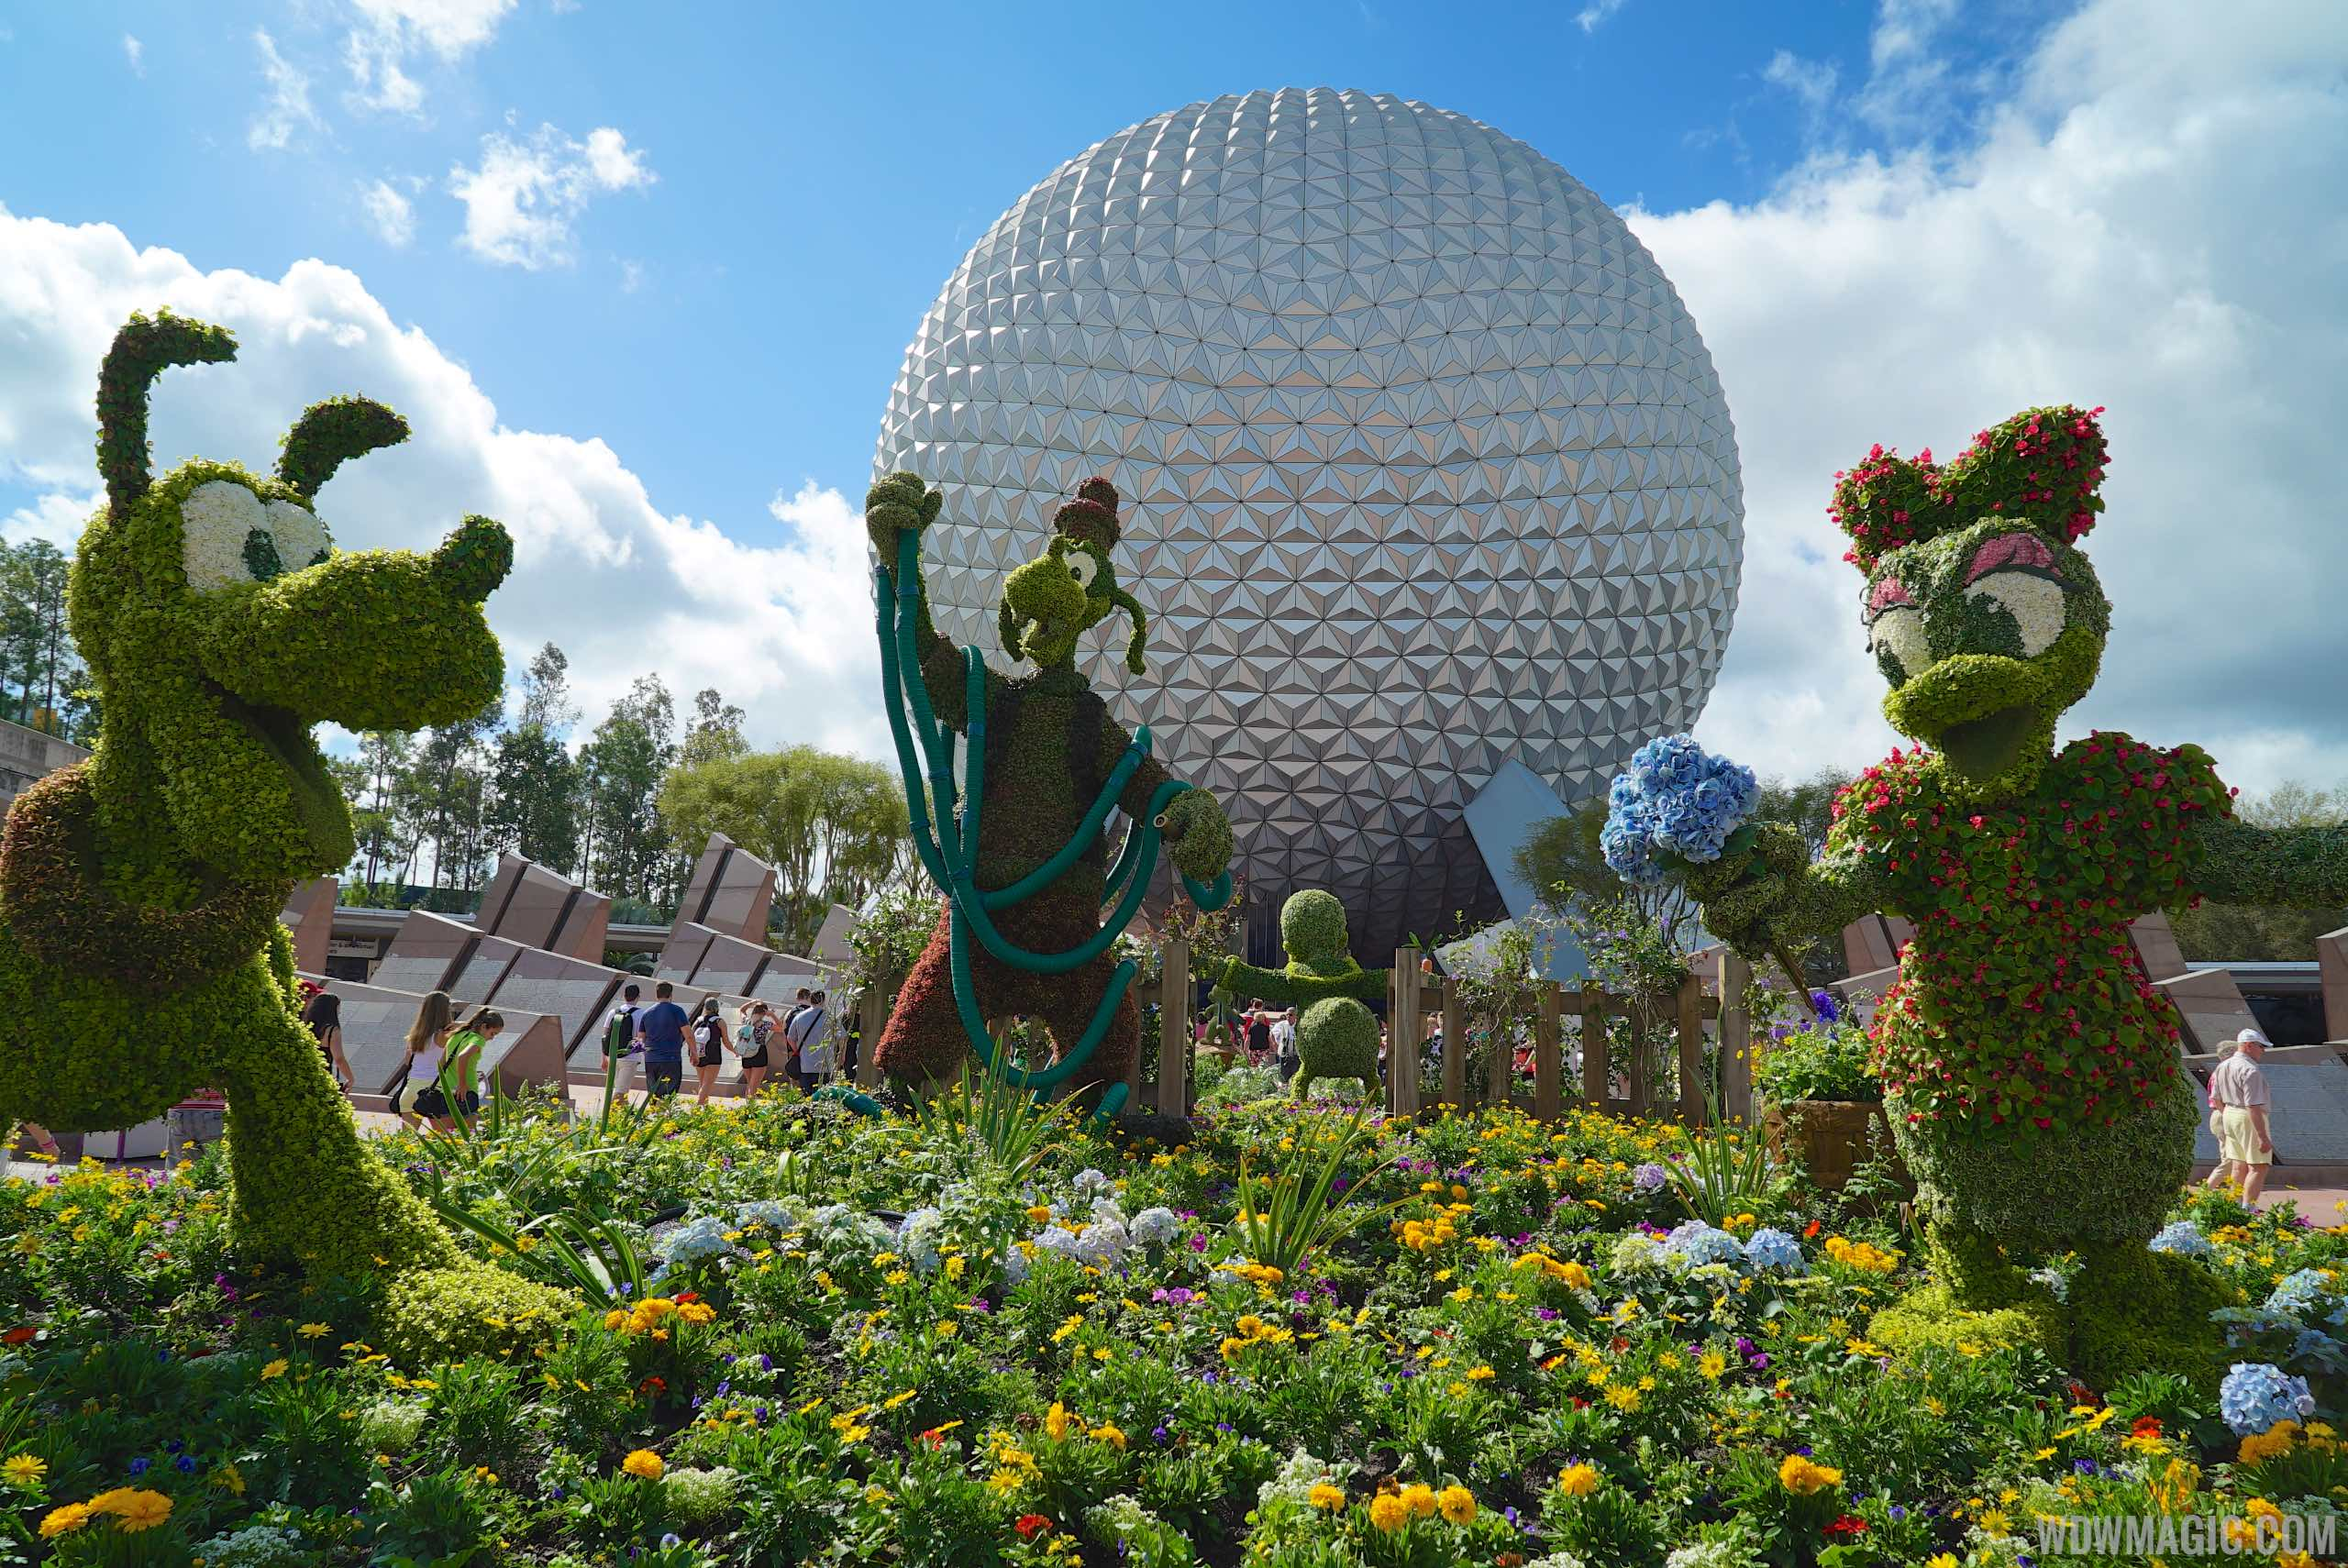 2015 Epcot Flower and Garden Festival - Main entrance topiary